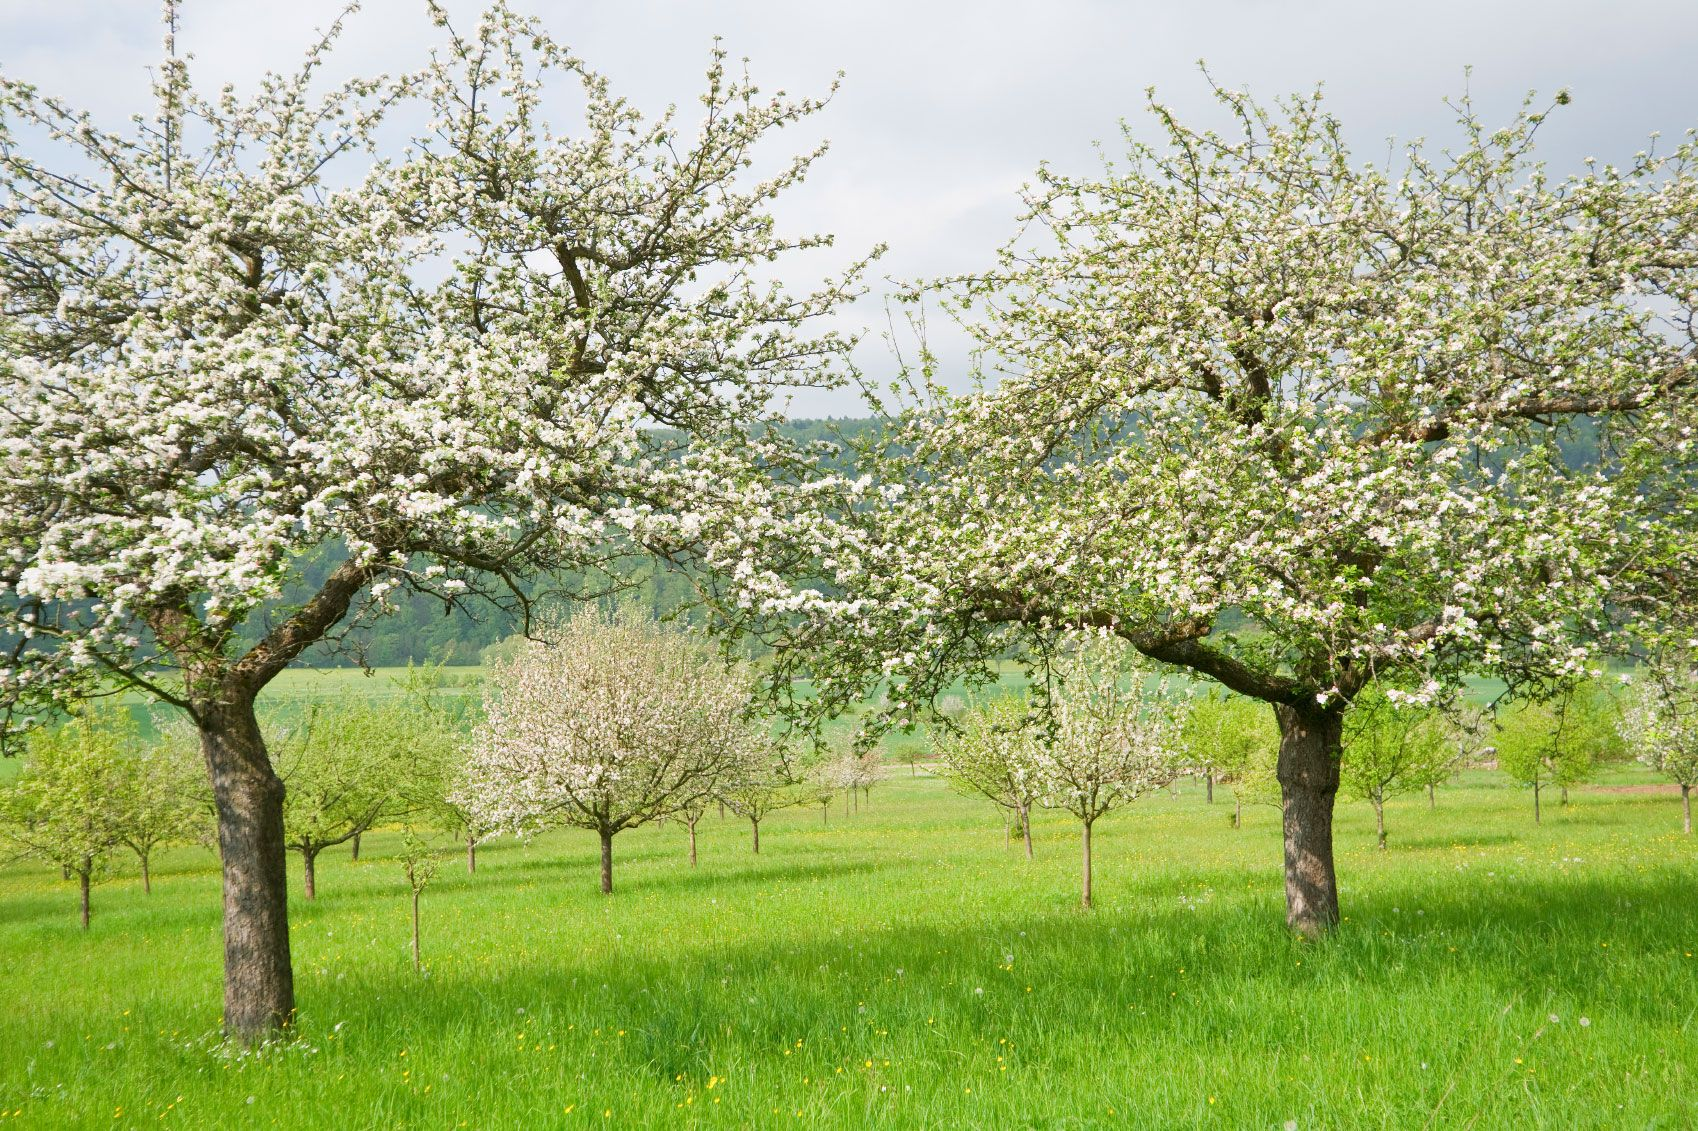 Fruit Trees Arent As Carefree As You Might Like Pests